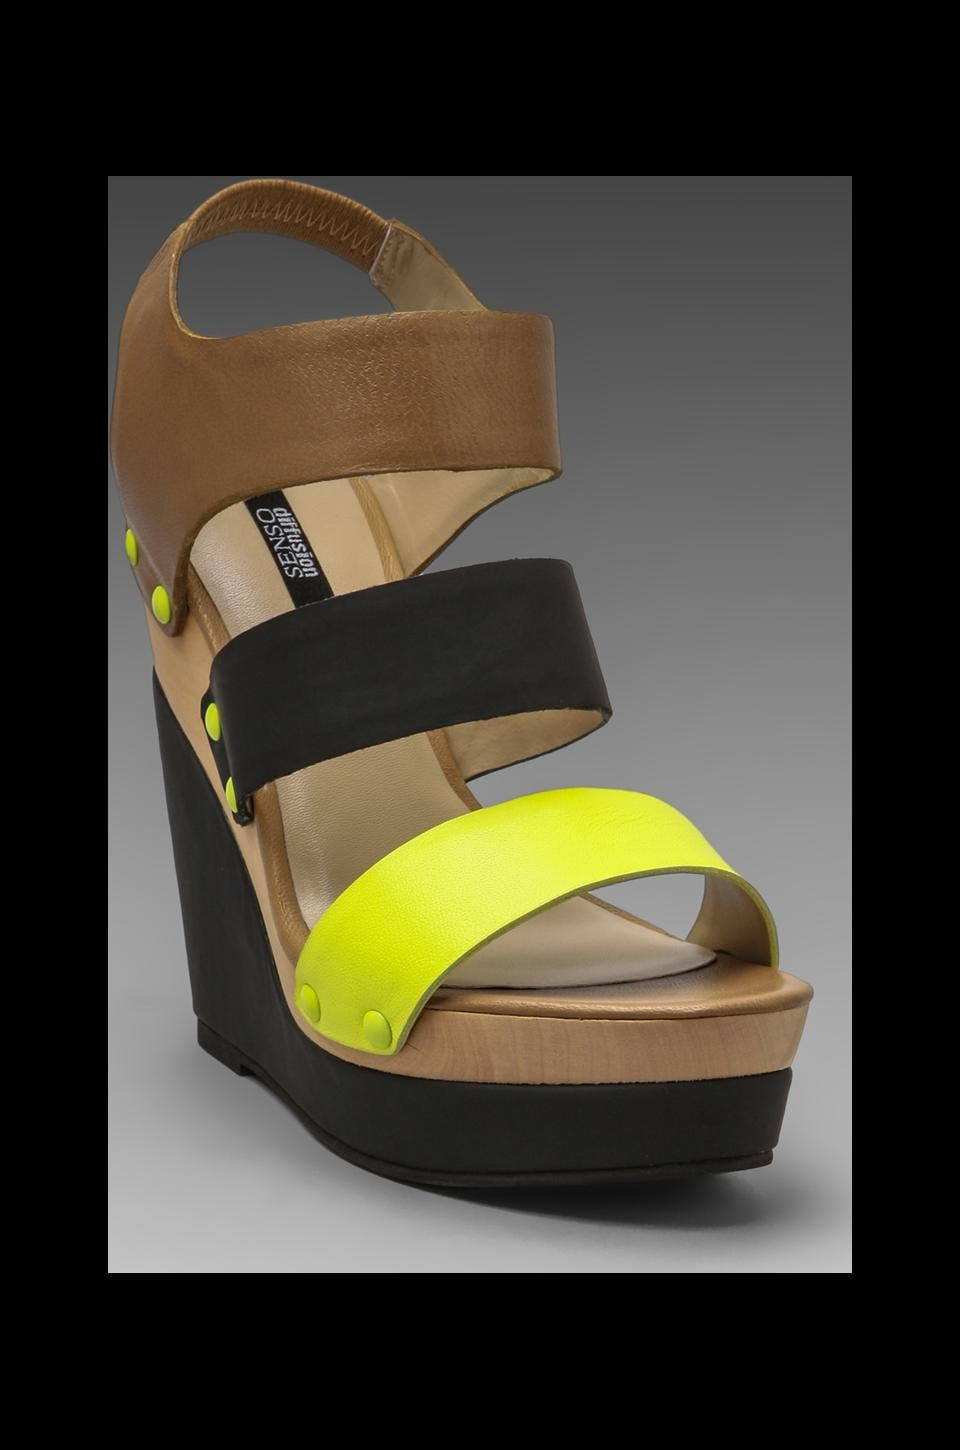 SENSO DIFFUSION Tessa Wedge Sandal in Yellow/Black/Beige